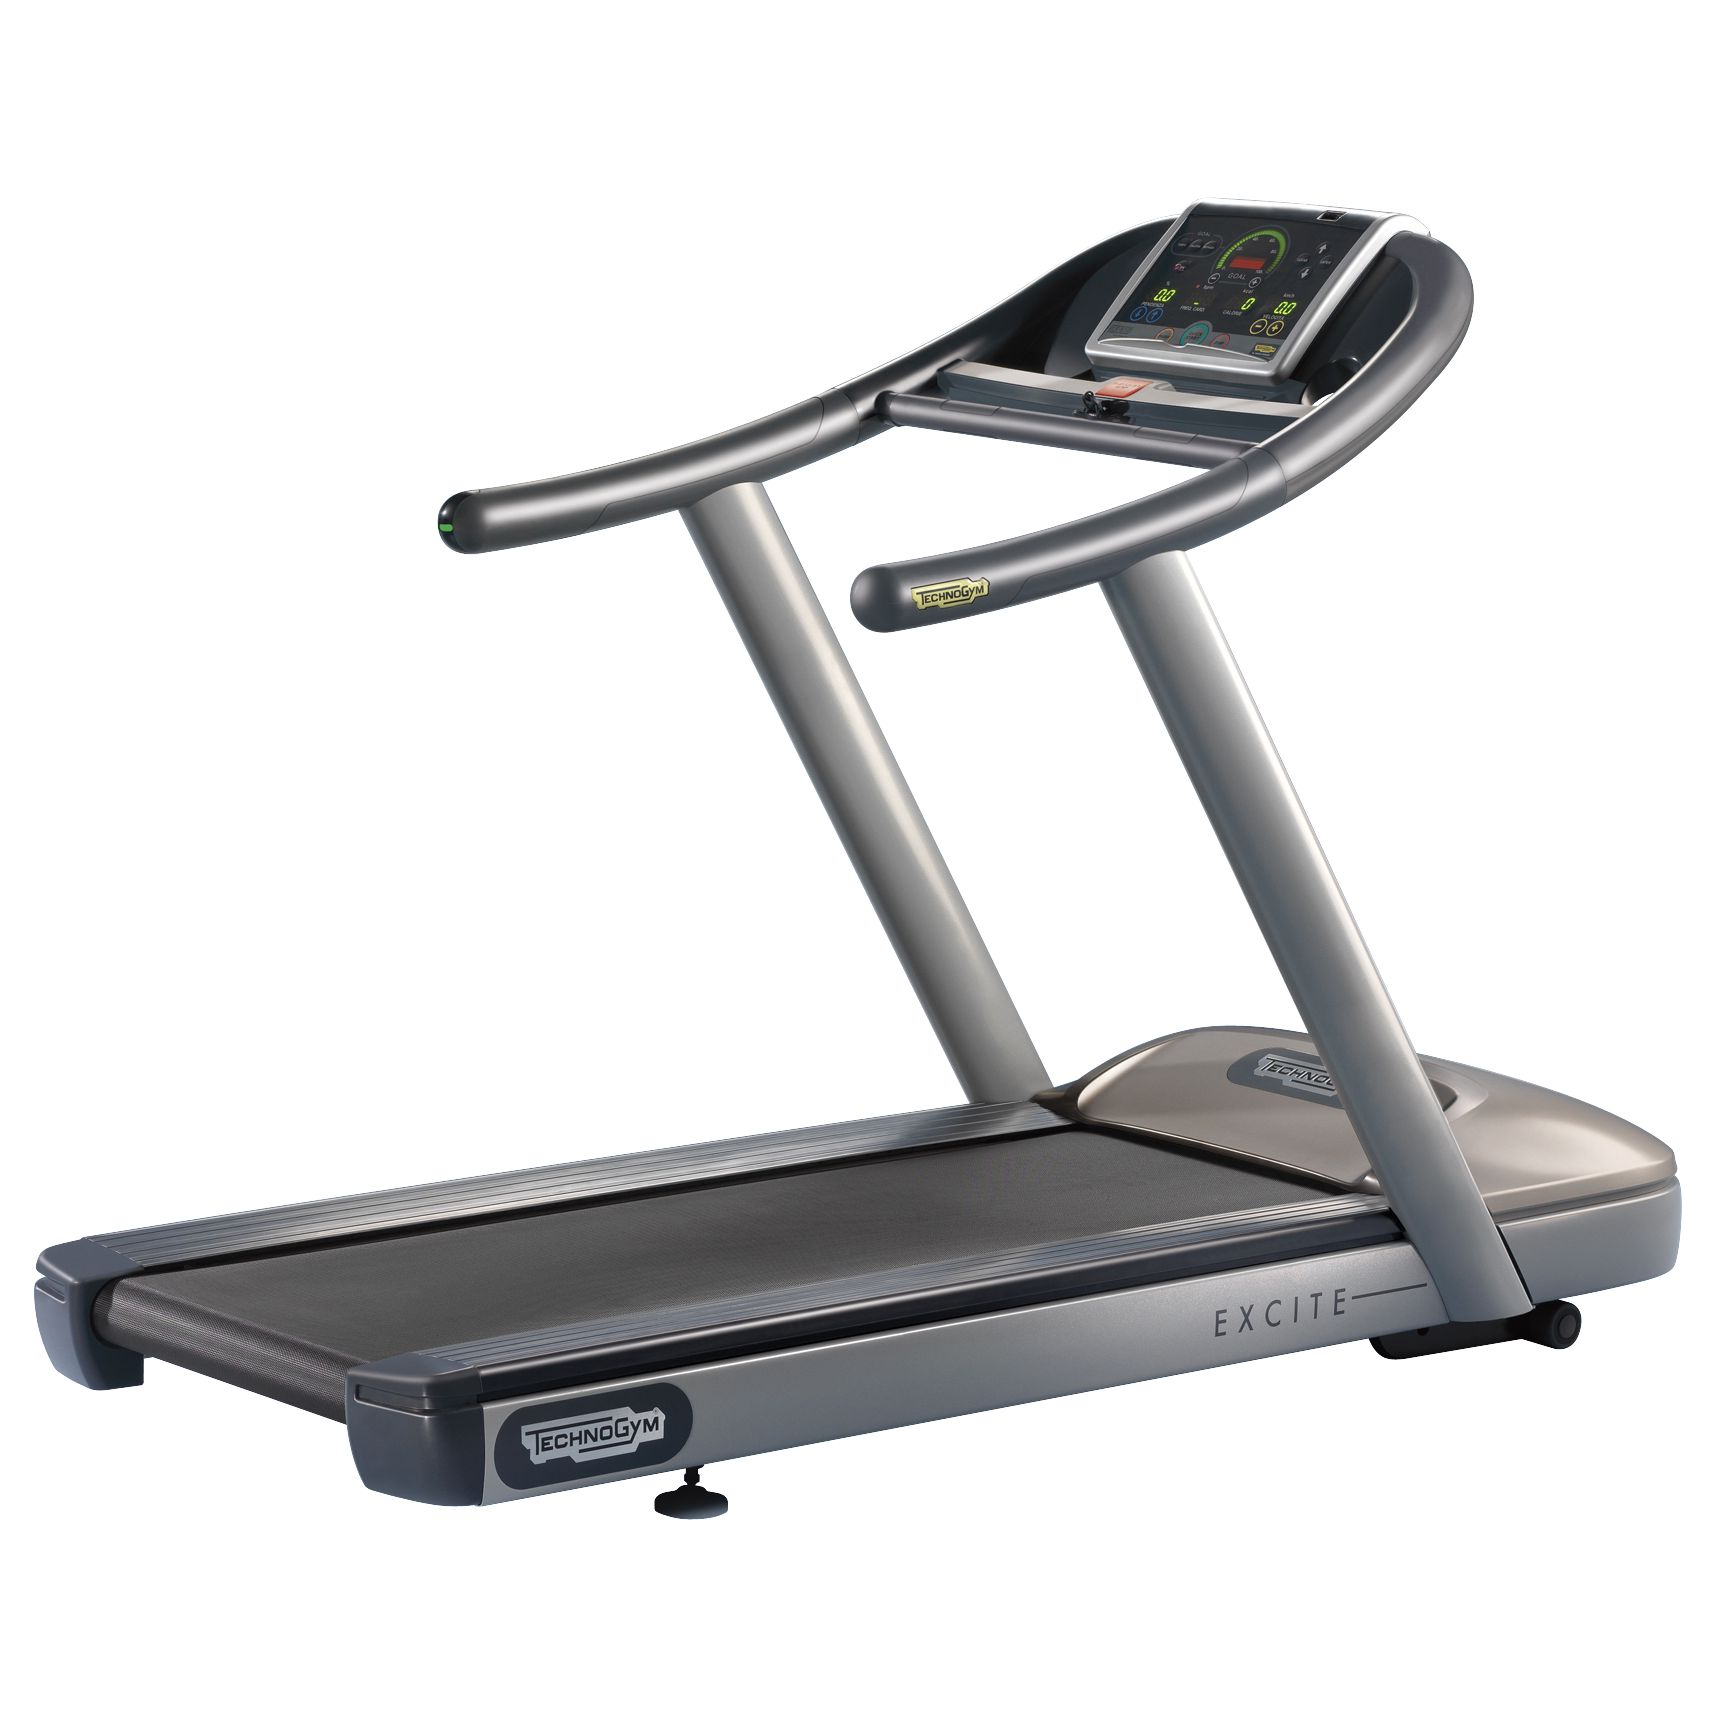 Technogym jog now 700 led treadmill review compare for Technogym all in one